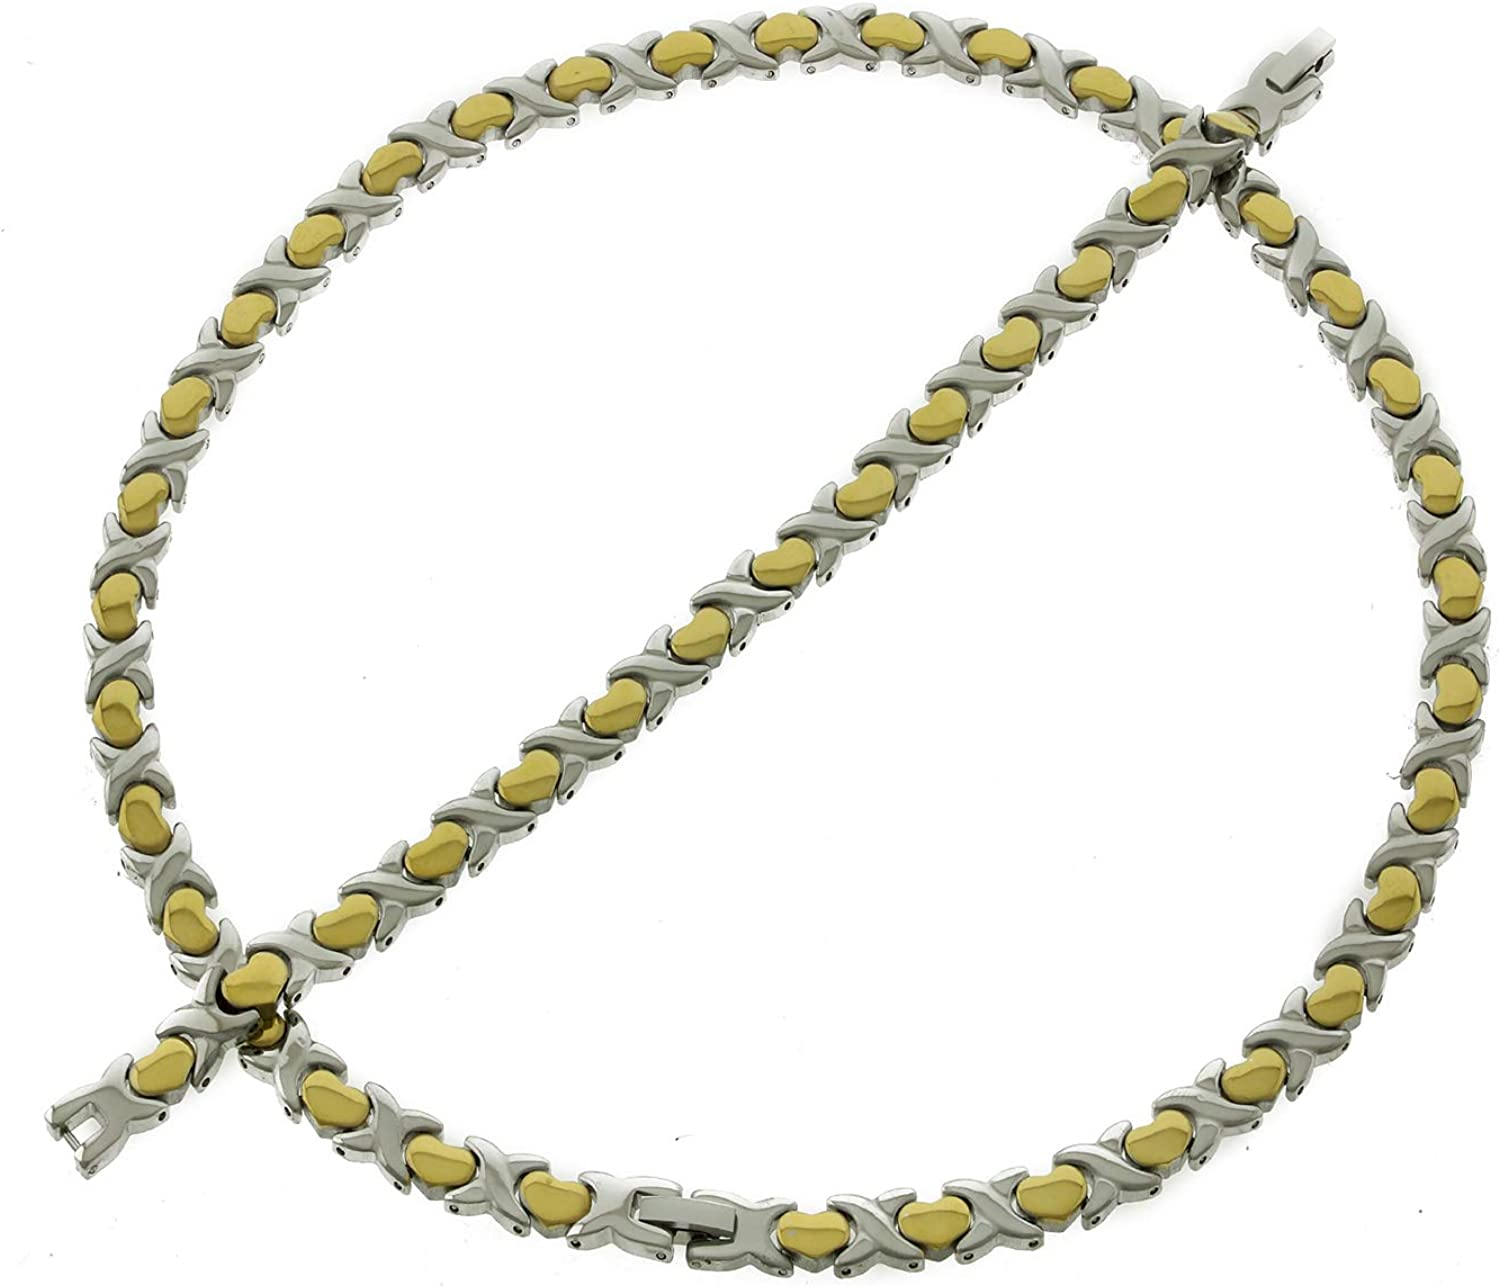 Women's 2 Tone Hugs and Kisses XOXO Necklace Bracelet Set Stainless Steel Stampato Jewelry 20 inches